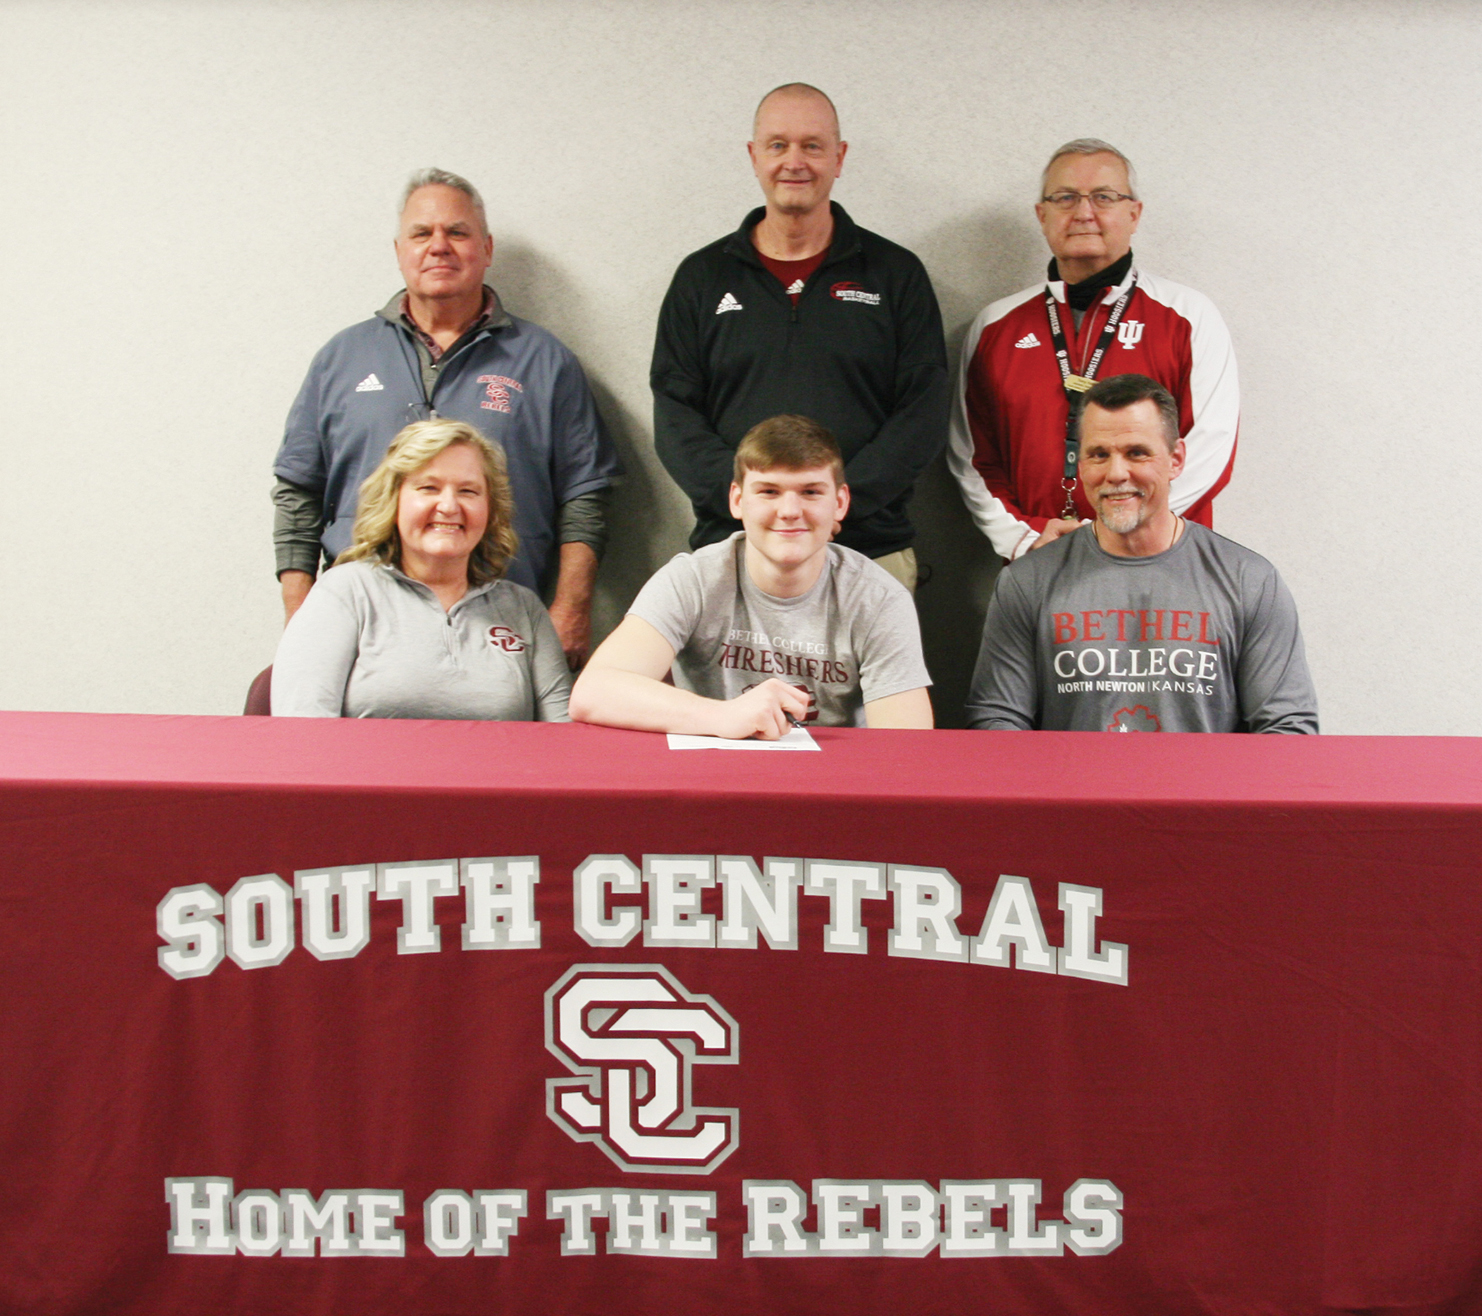 Stewart to play for Threshers at Bethel